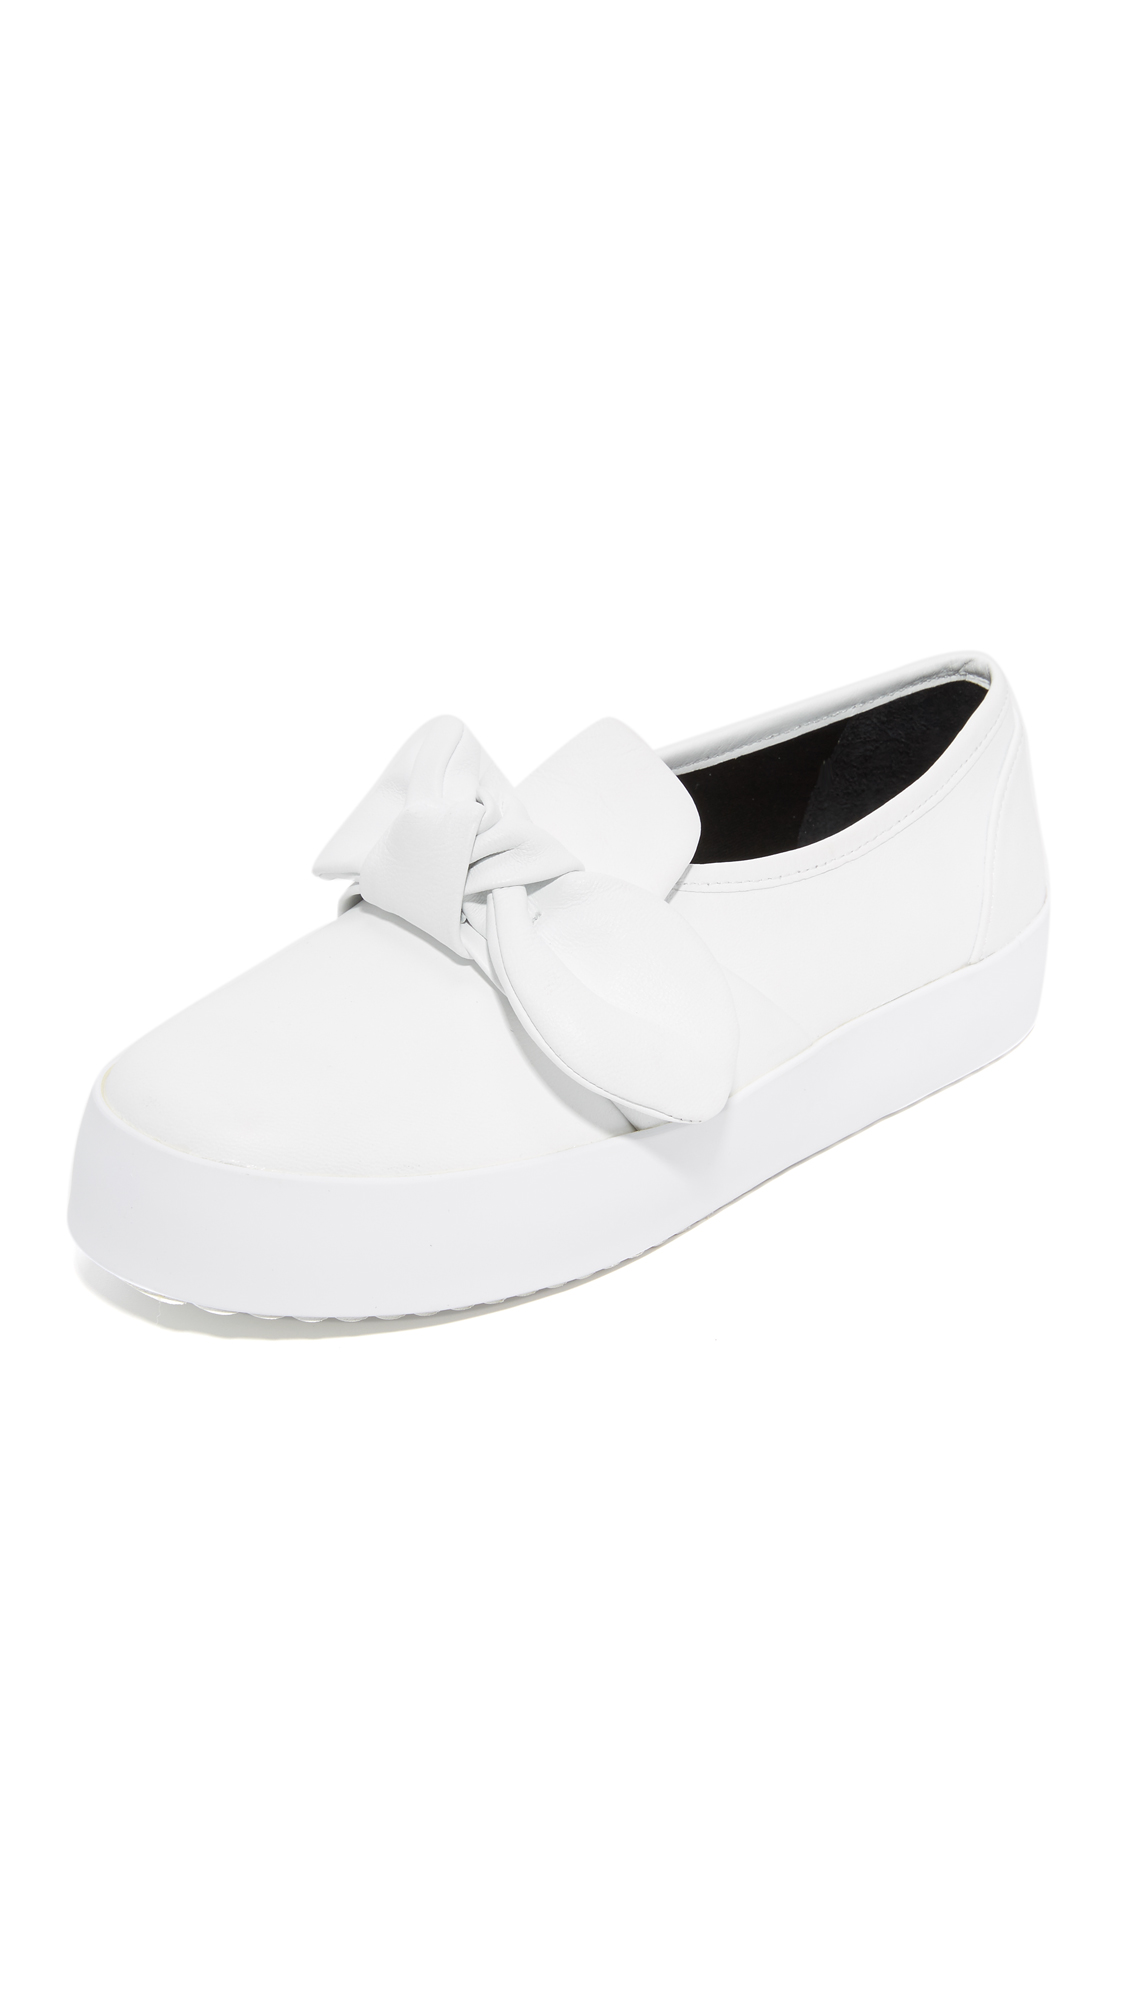 Sturdy leather Rebecca Minkoff slip on sneakers styled with a knotted bow at the vamp. Hidden elastic gore insets. Padded footbed and rubber sole. Leather: Cowhide. Imported, China. This item cannot be gift boxed. Measurements Platform: 1.25